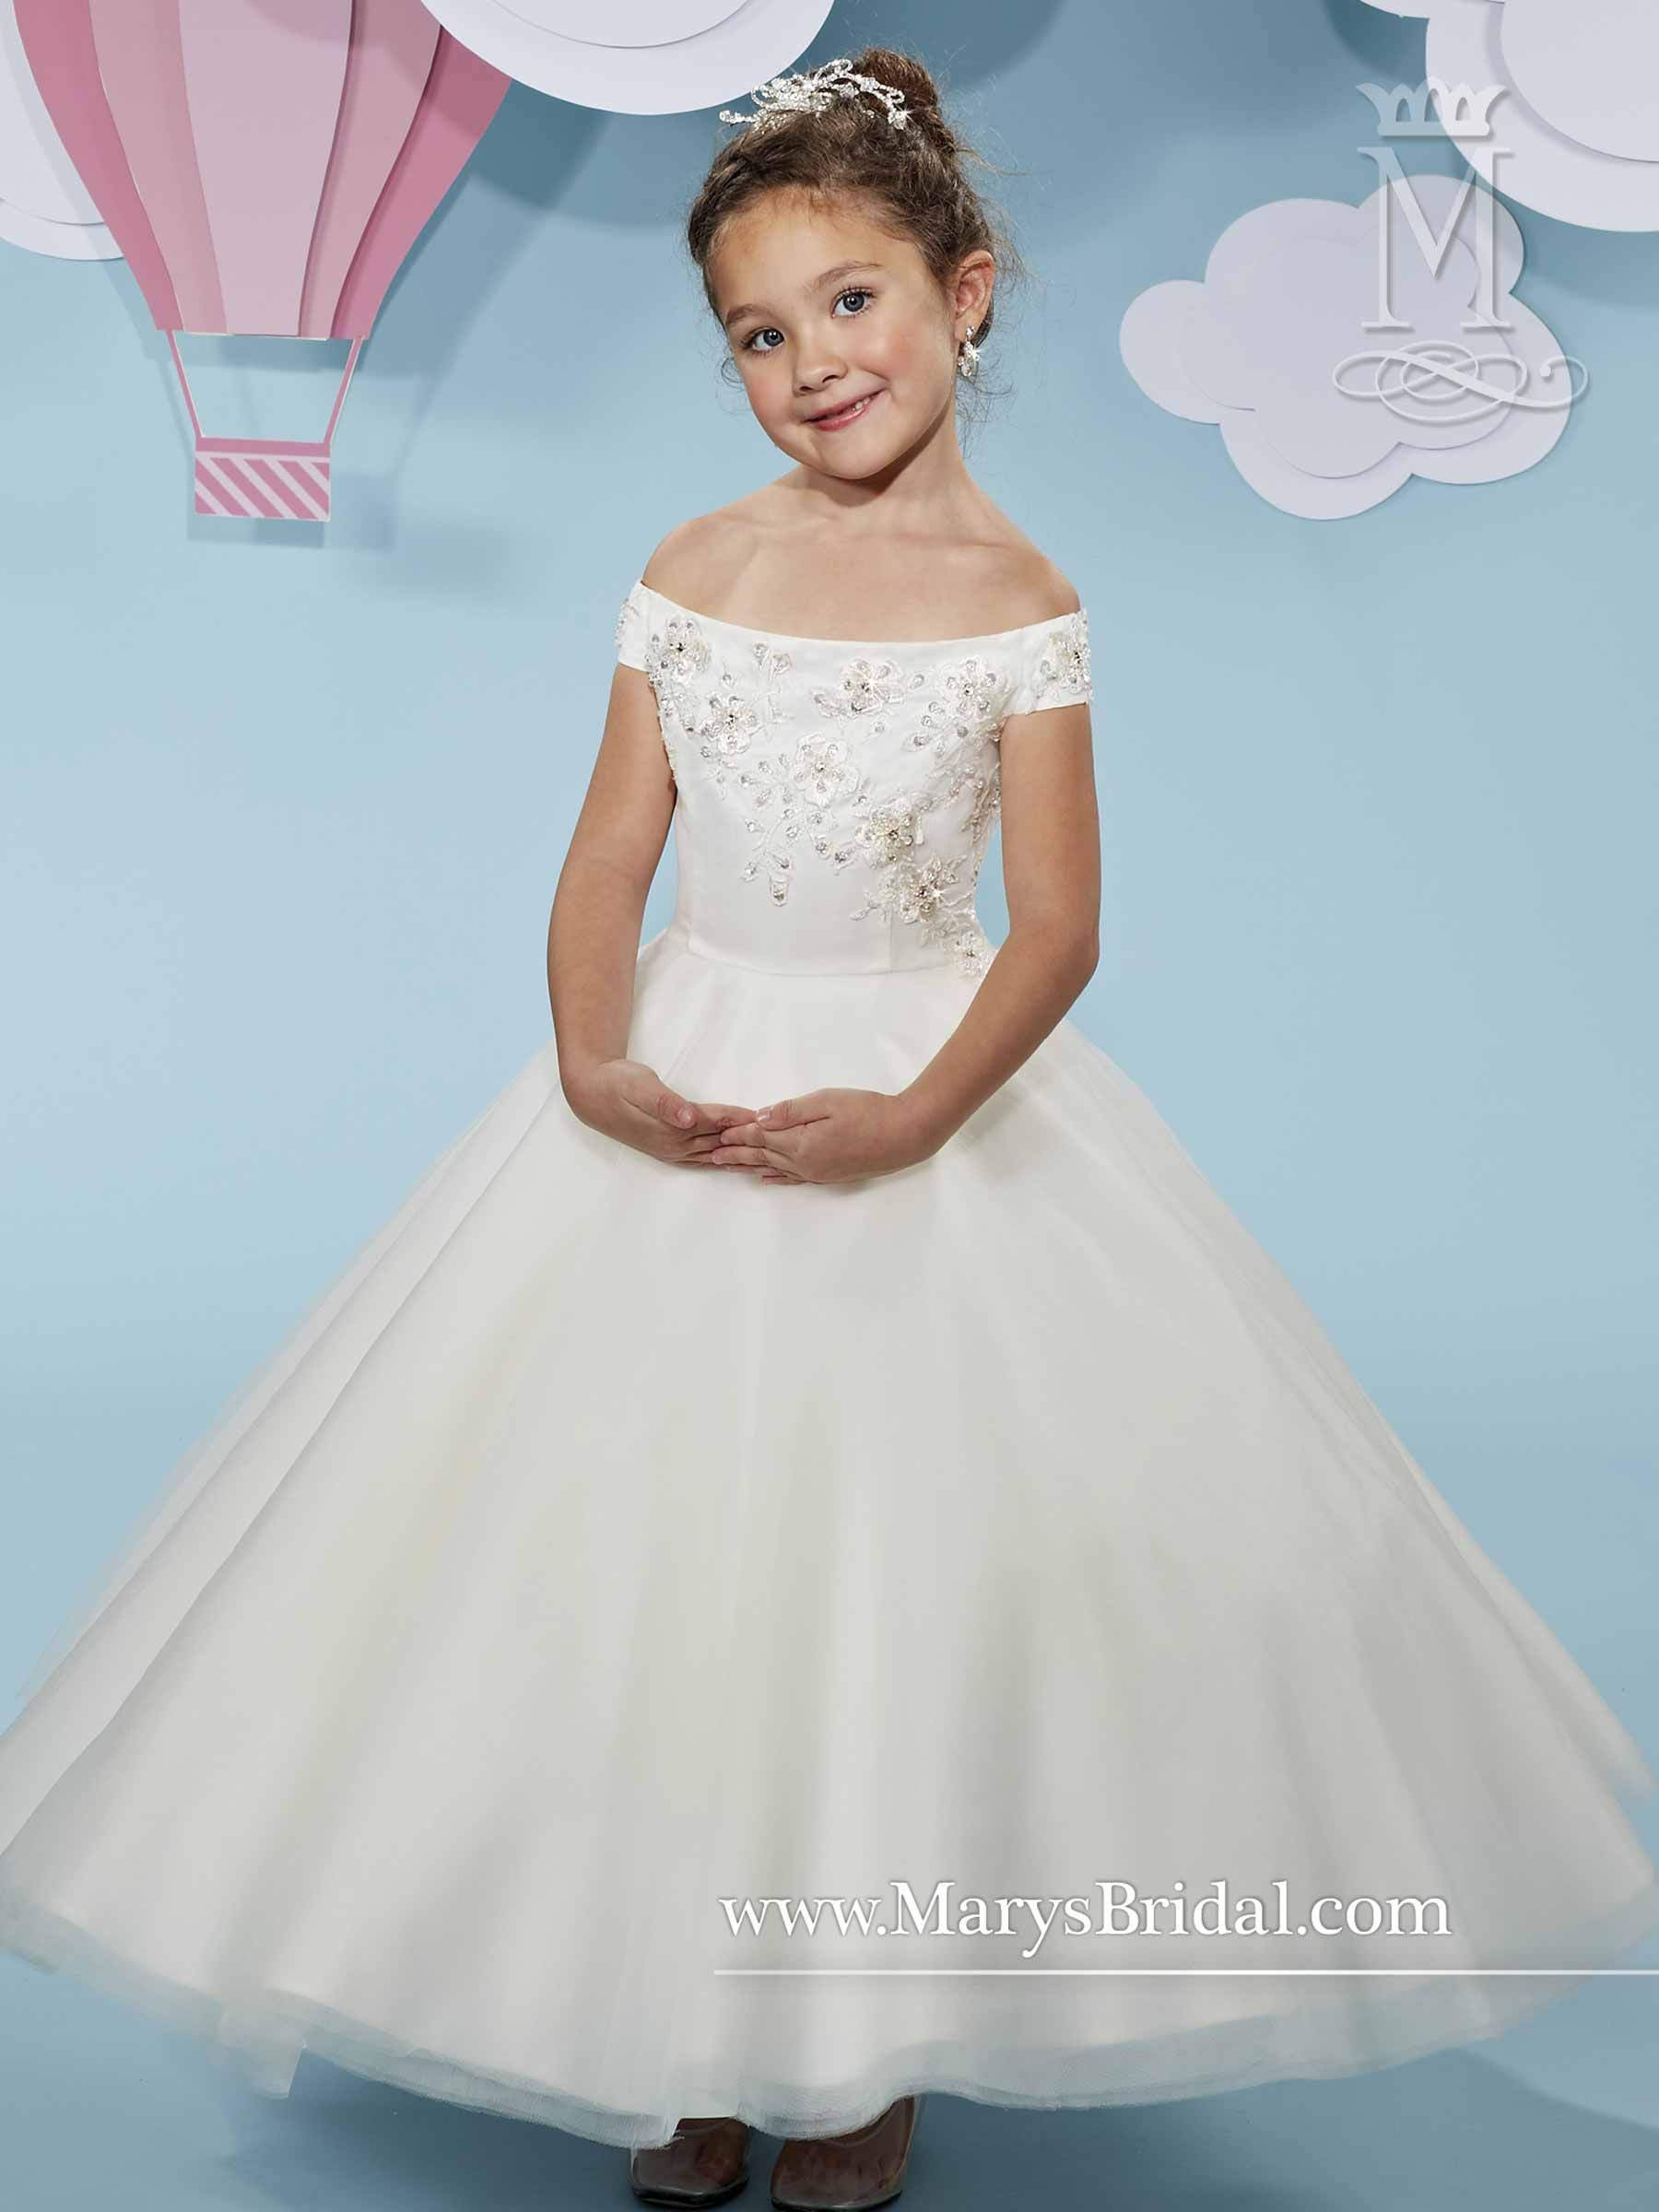 871a3ca2f9d3 Off- shoulder tulle flower girl ball gown with beads and embroidery on  bodice, back zipper.